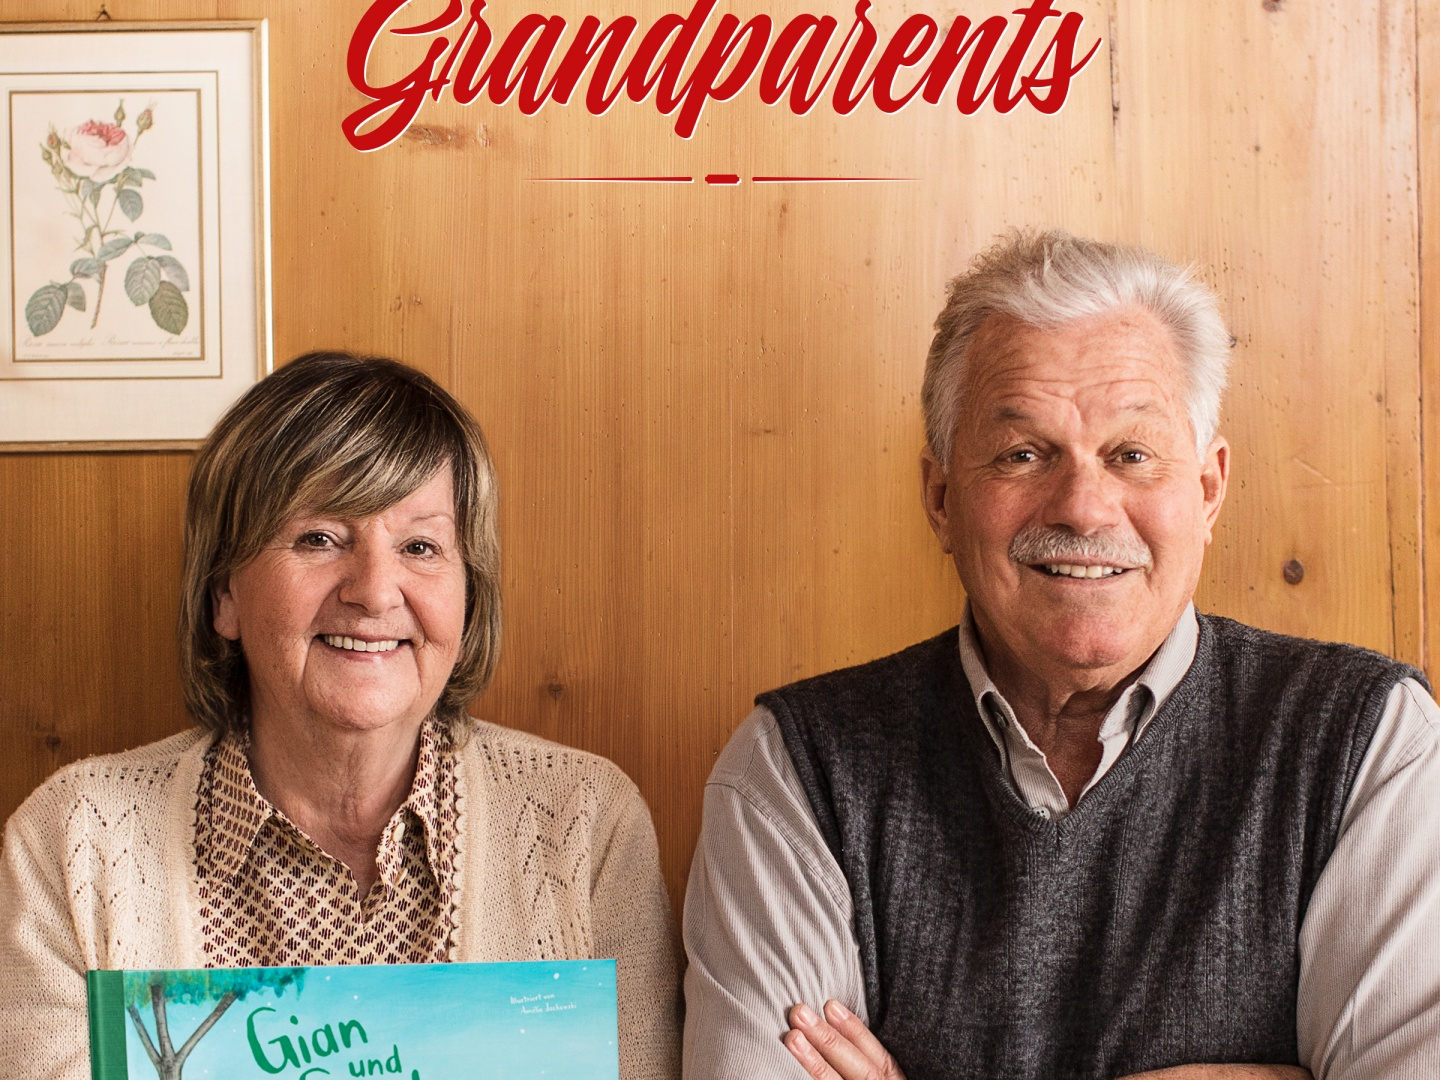 Grandparents Pre-sale Thumbnail